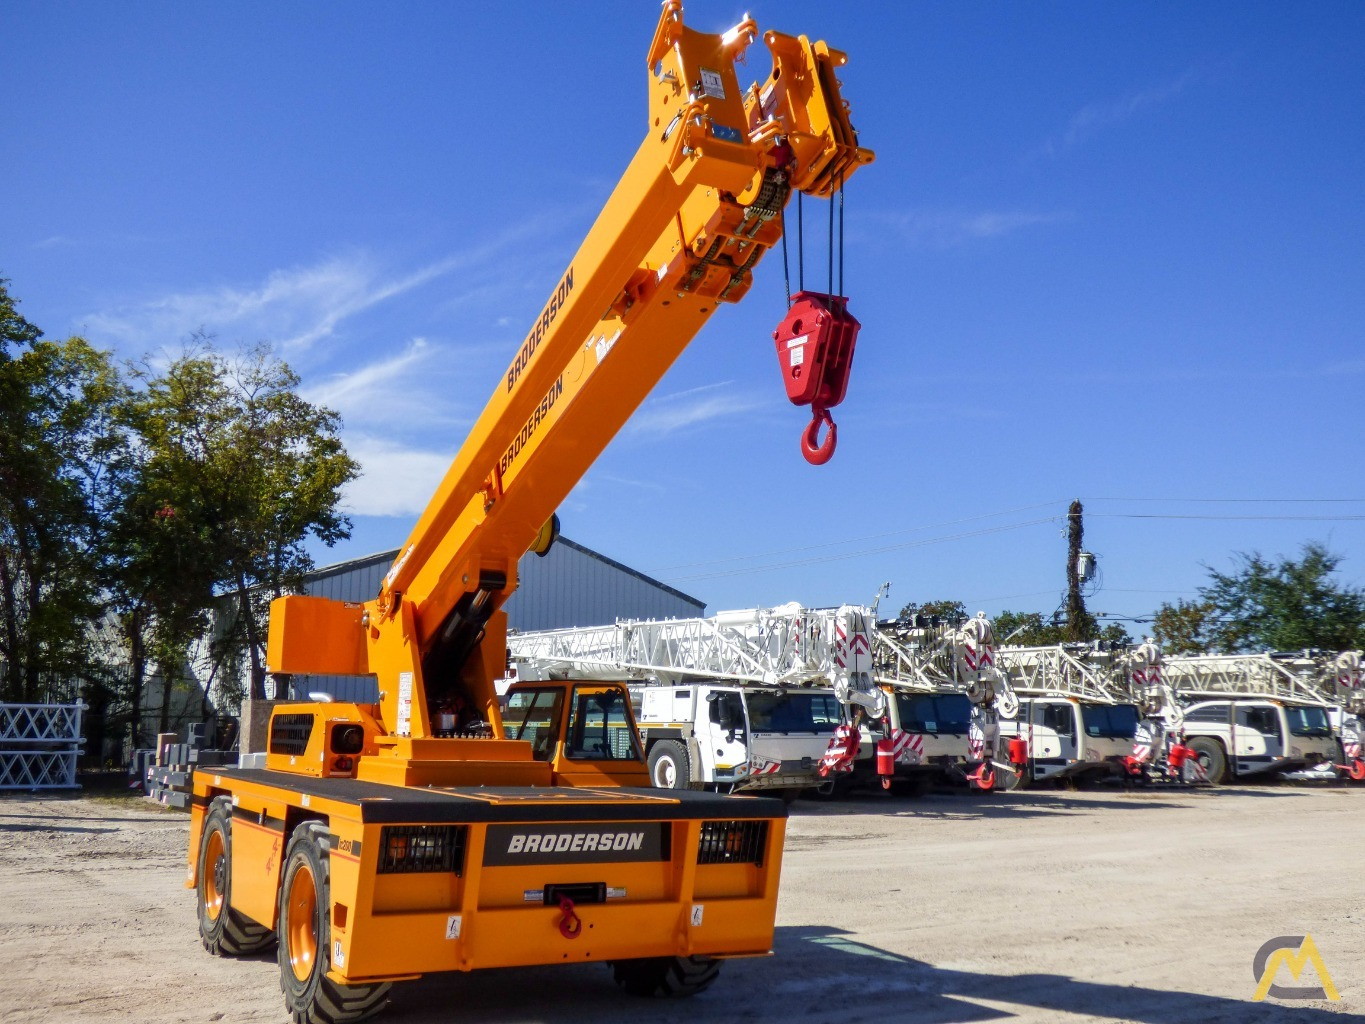 Broderson IC-200-3J 15-ton Available Immediately Carry Deck Industrial Crane 2